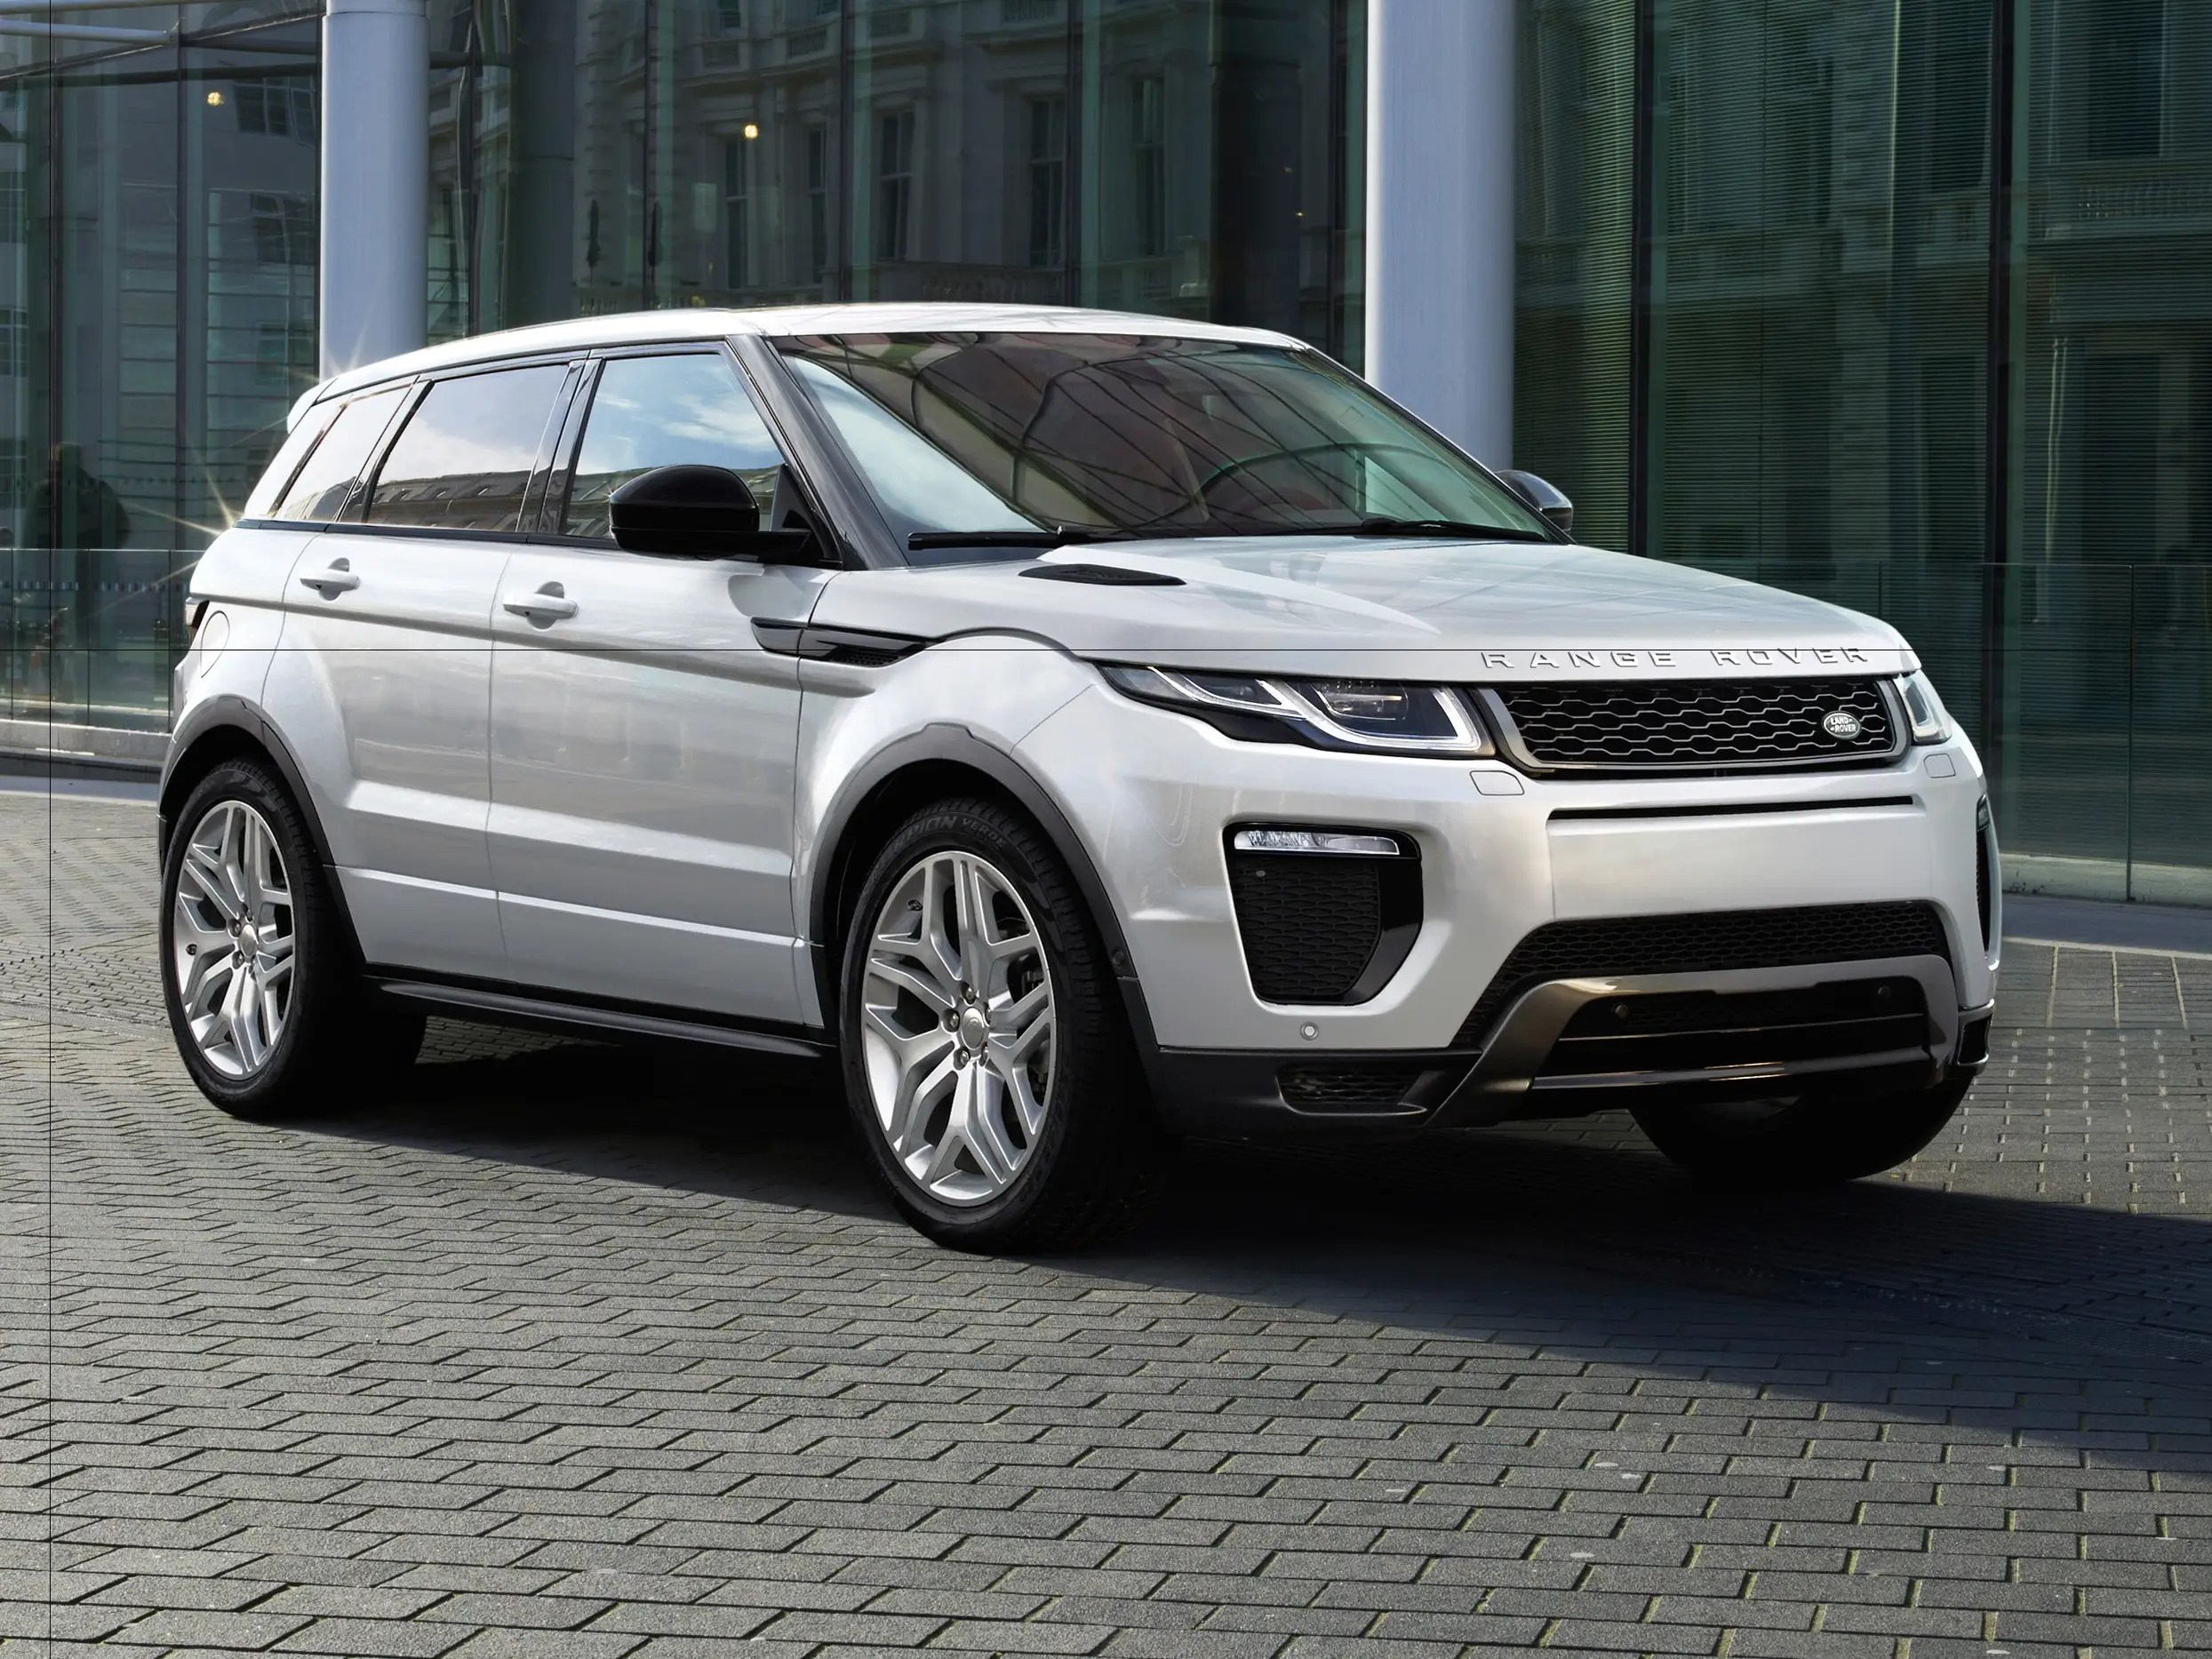 China sells cheap Range Rover lookalike Business Insider